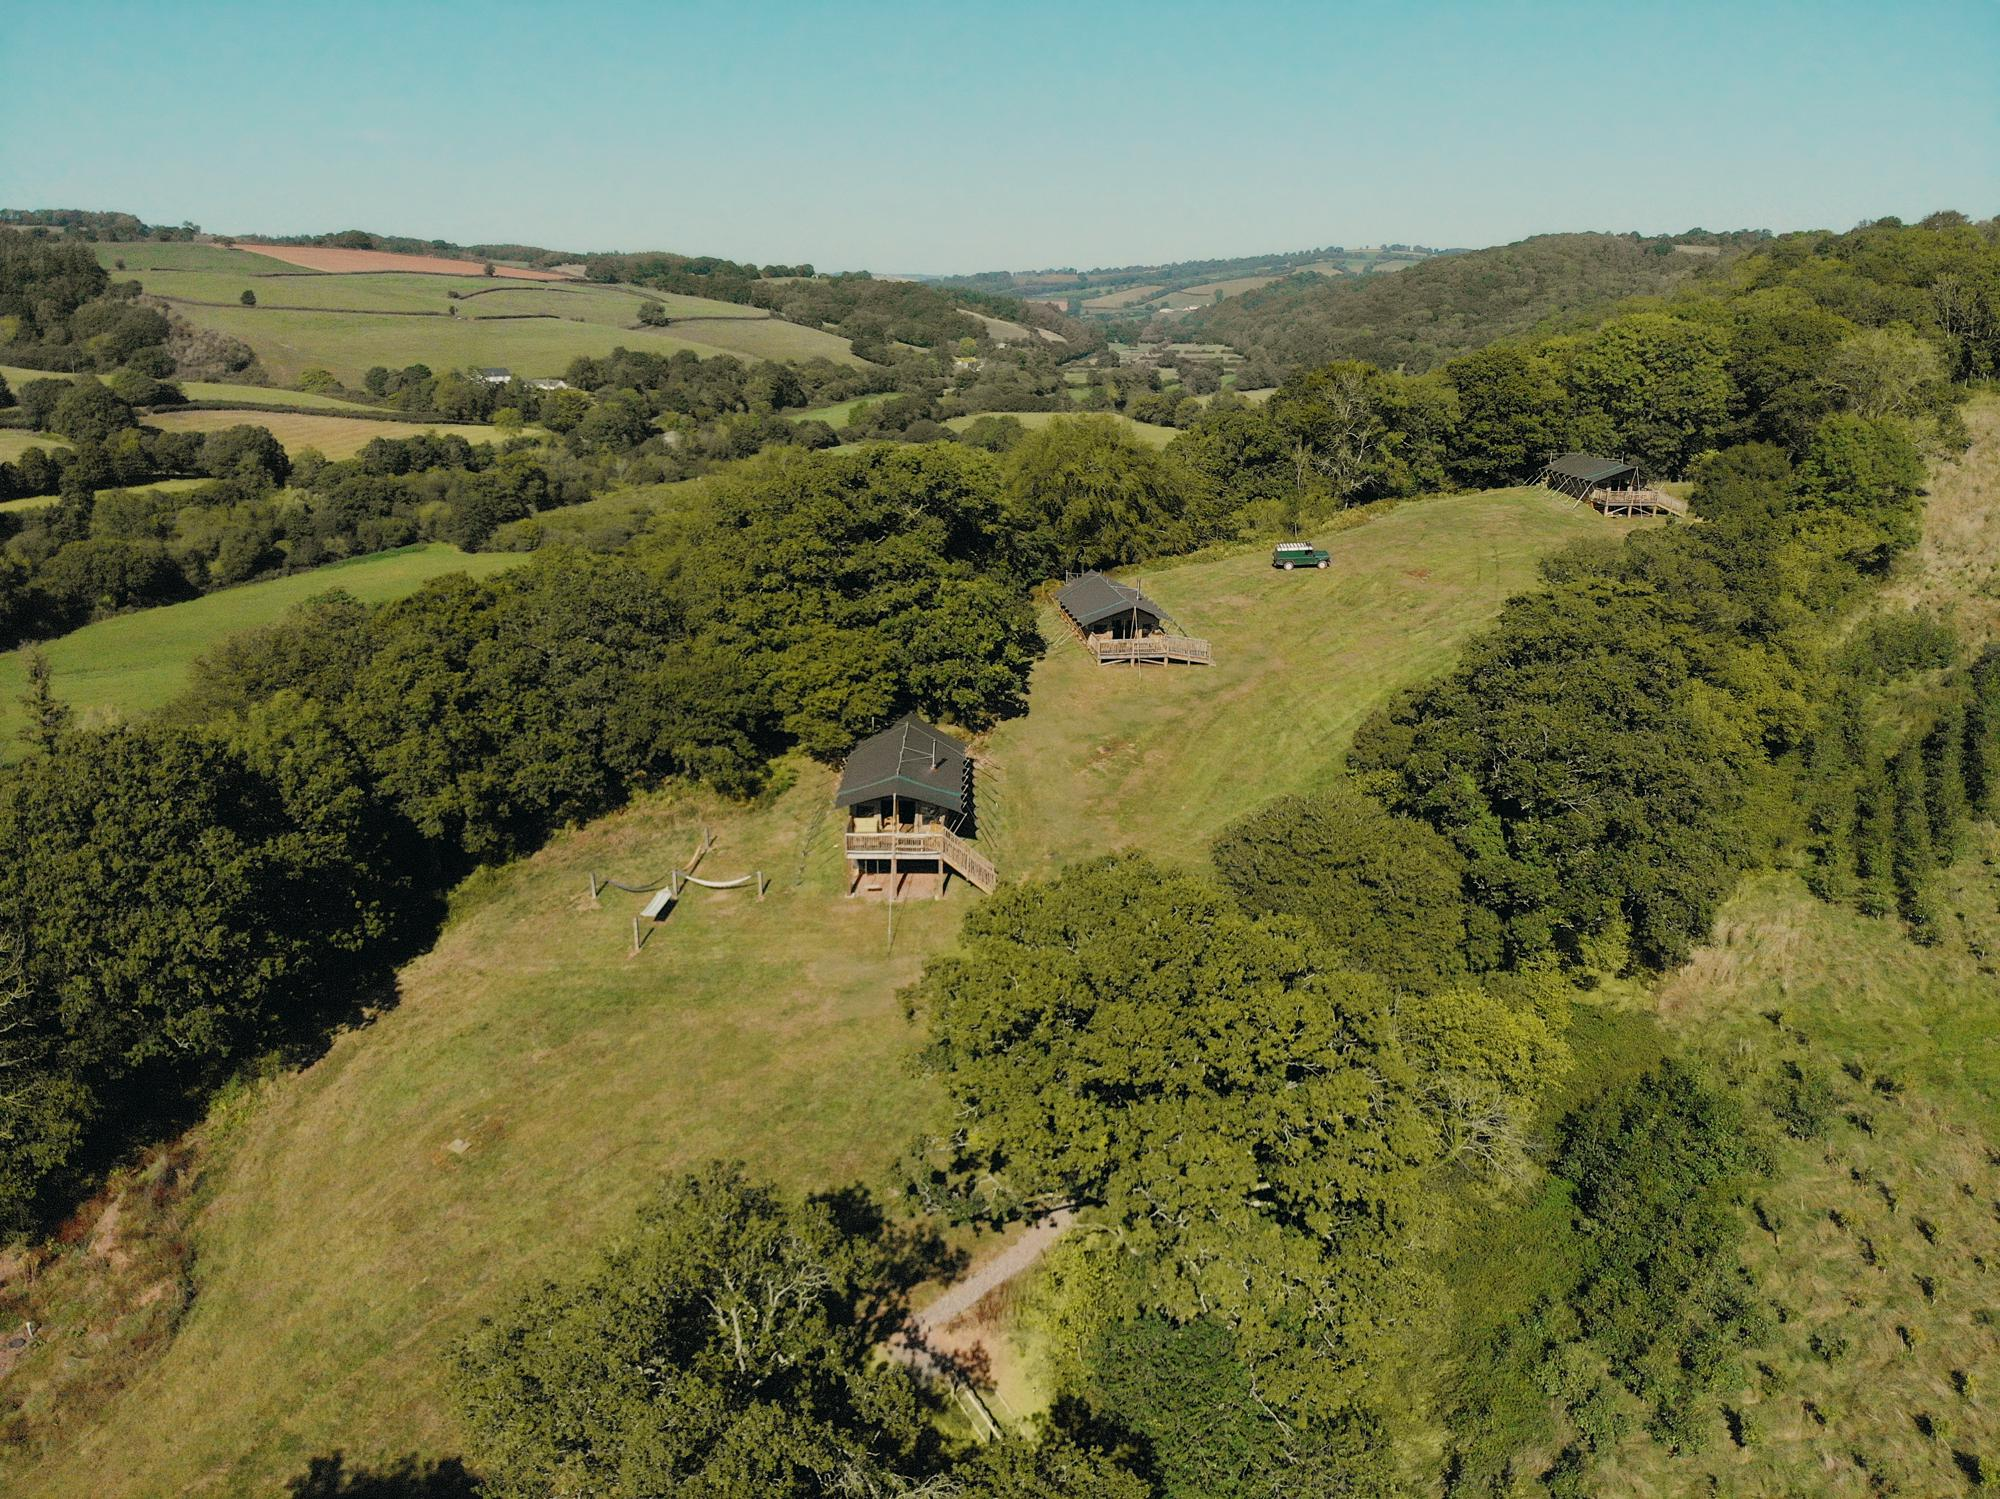 Campsites in Tiverton holidays at Cool Camping